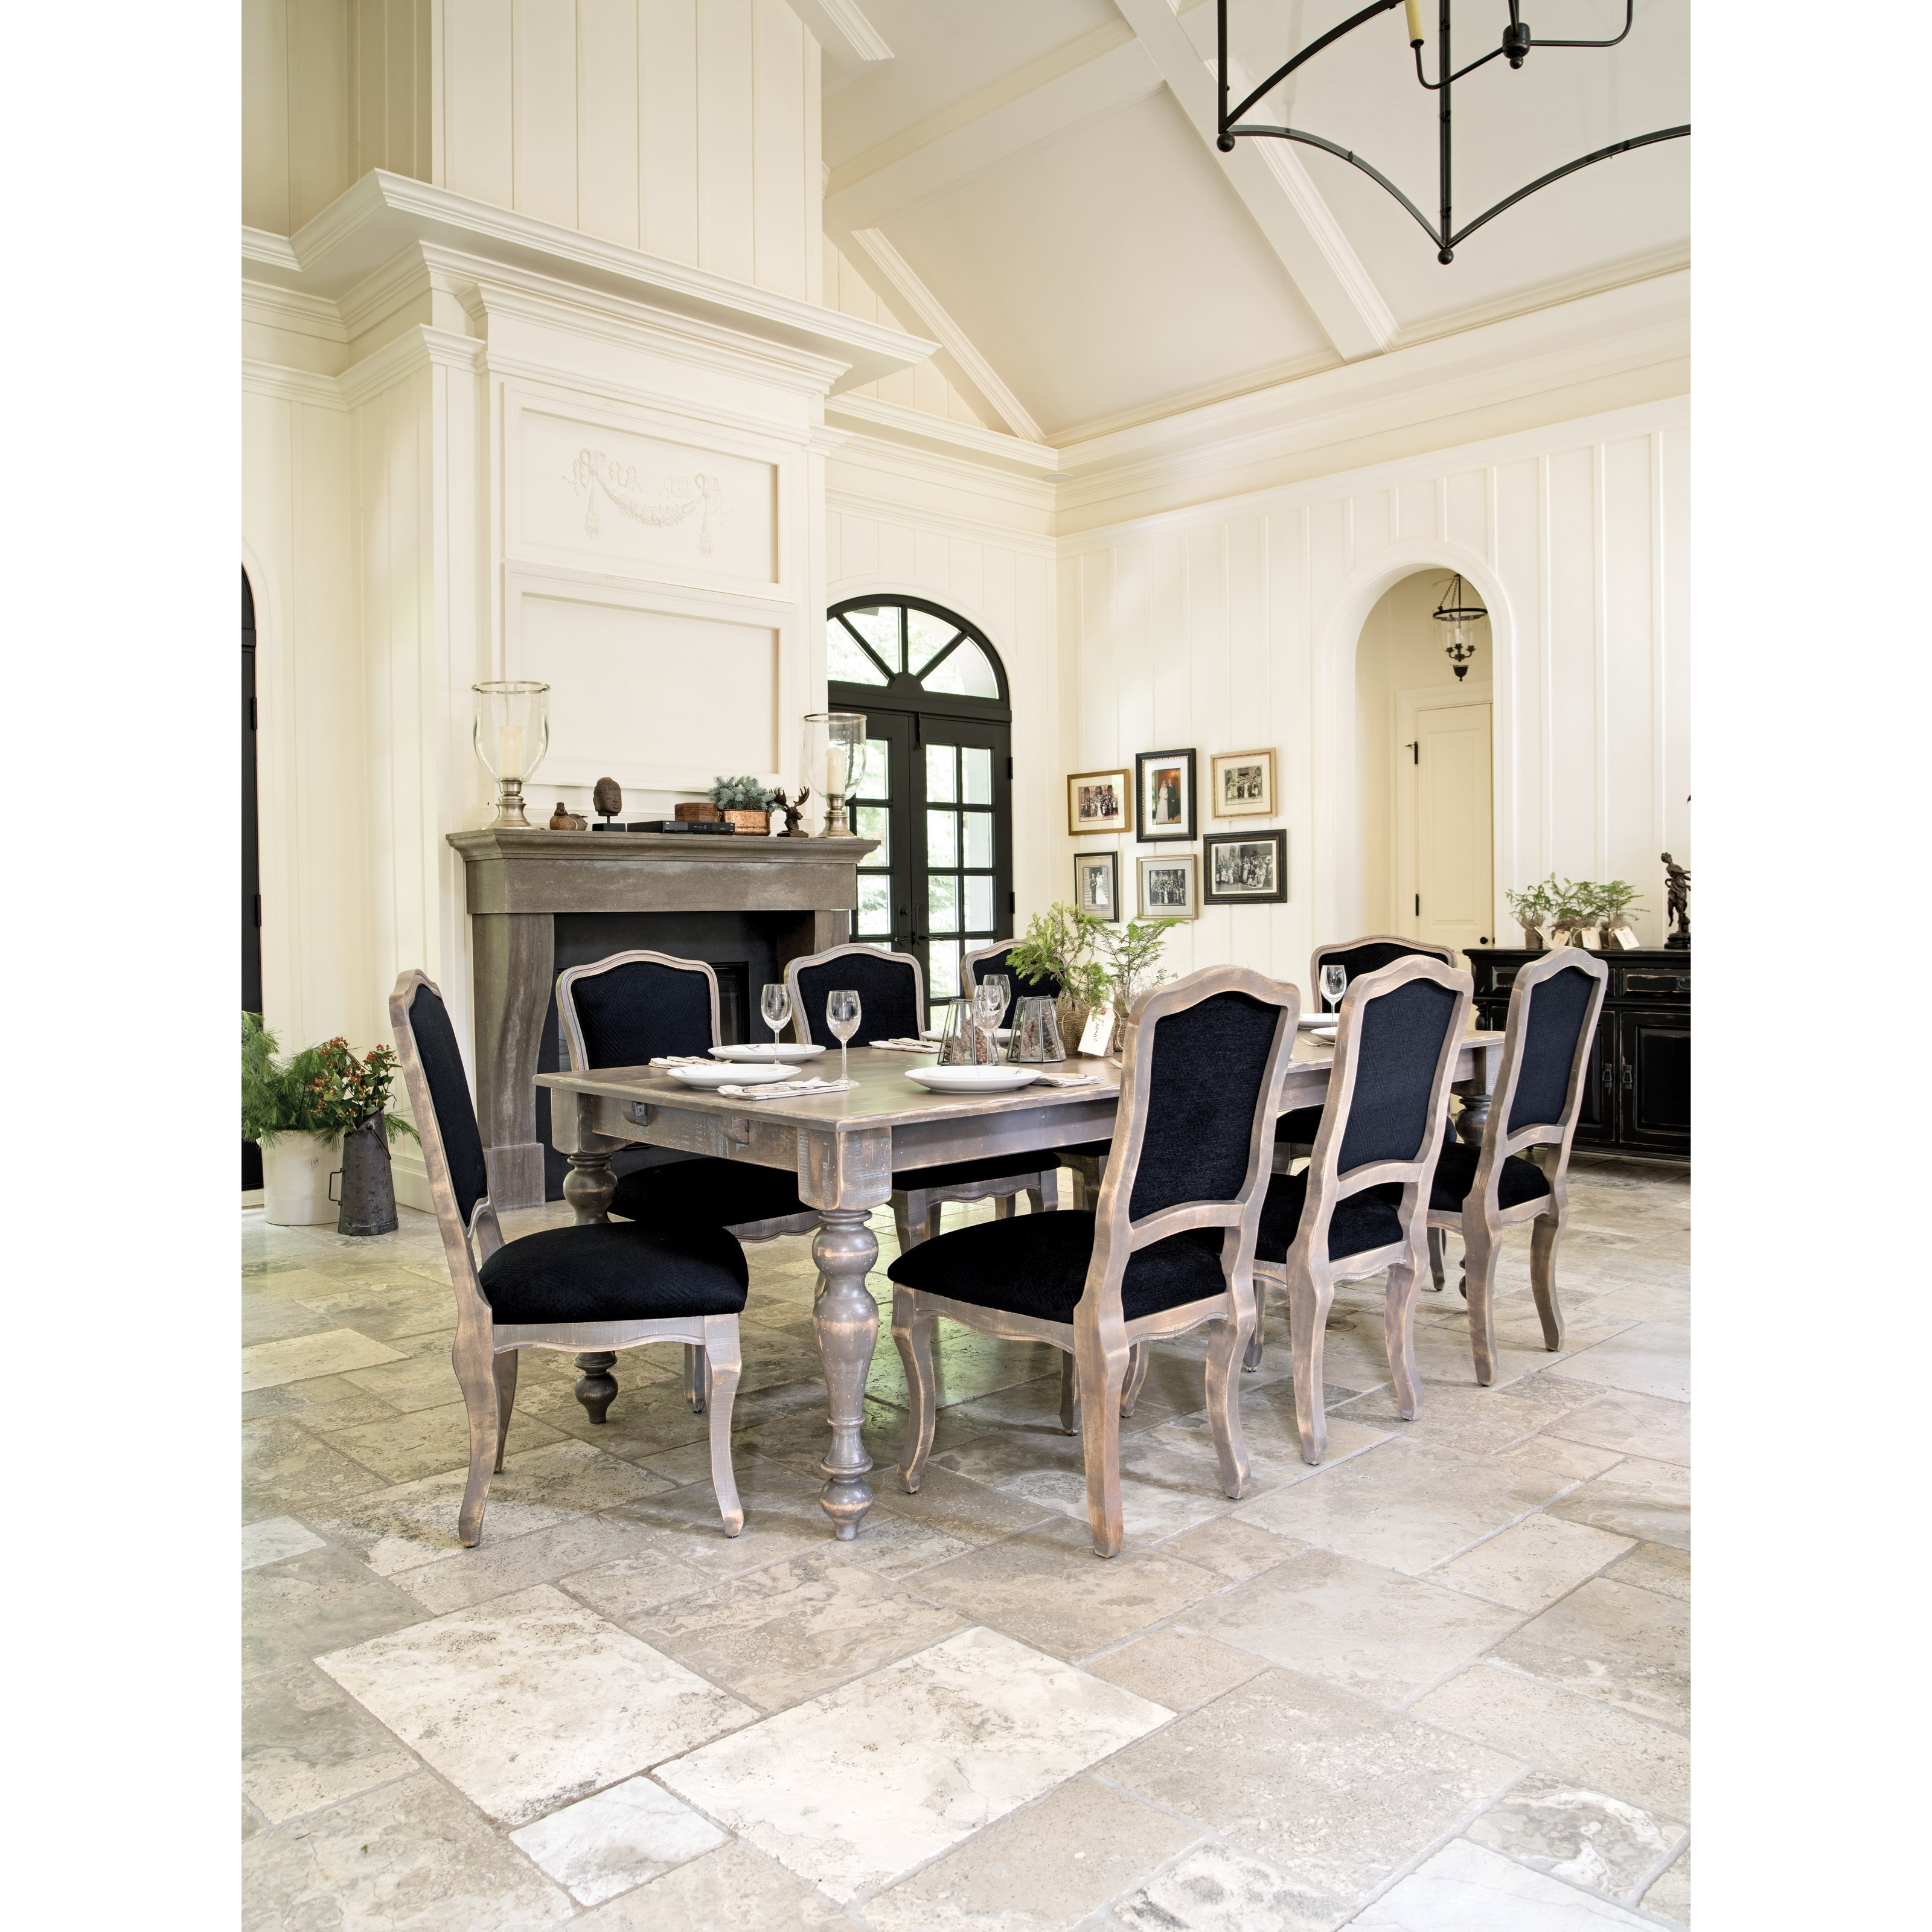 Champlain - Custom Dining Dining Room Group by Canadel at Dinette Depot